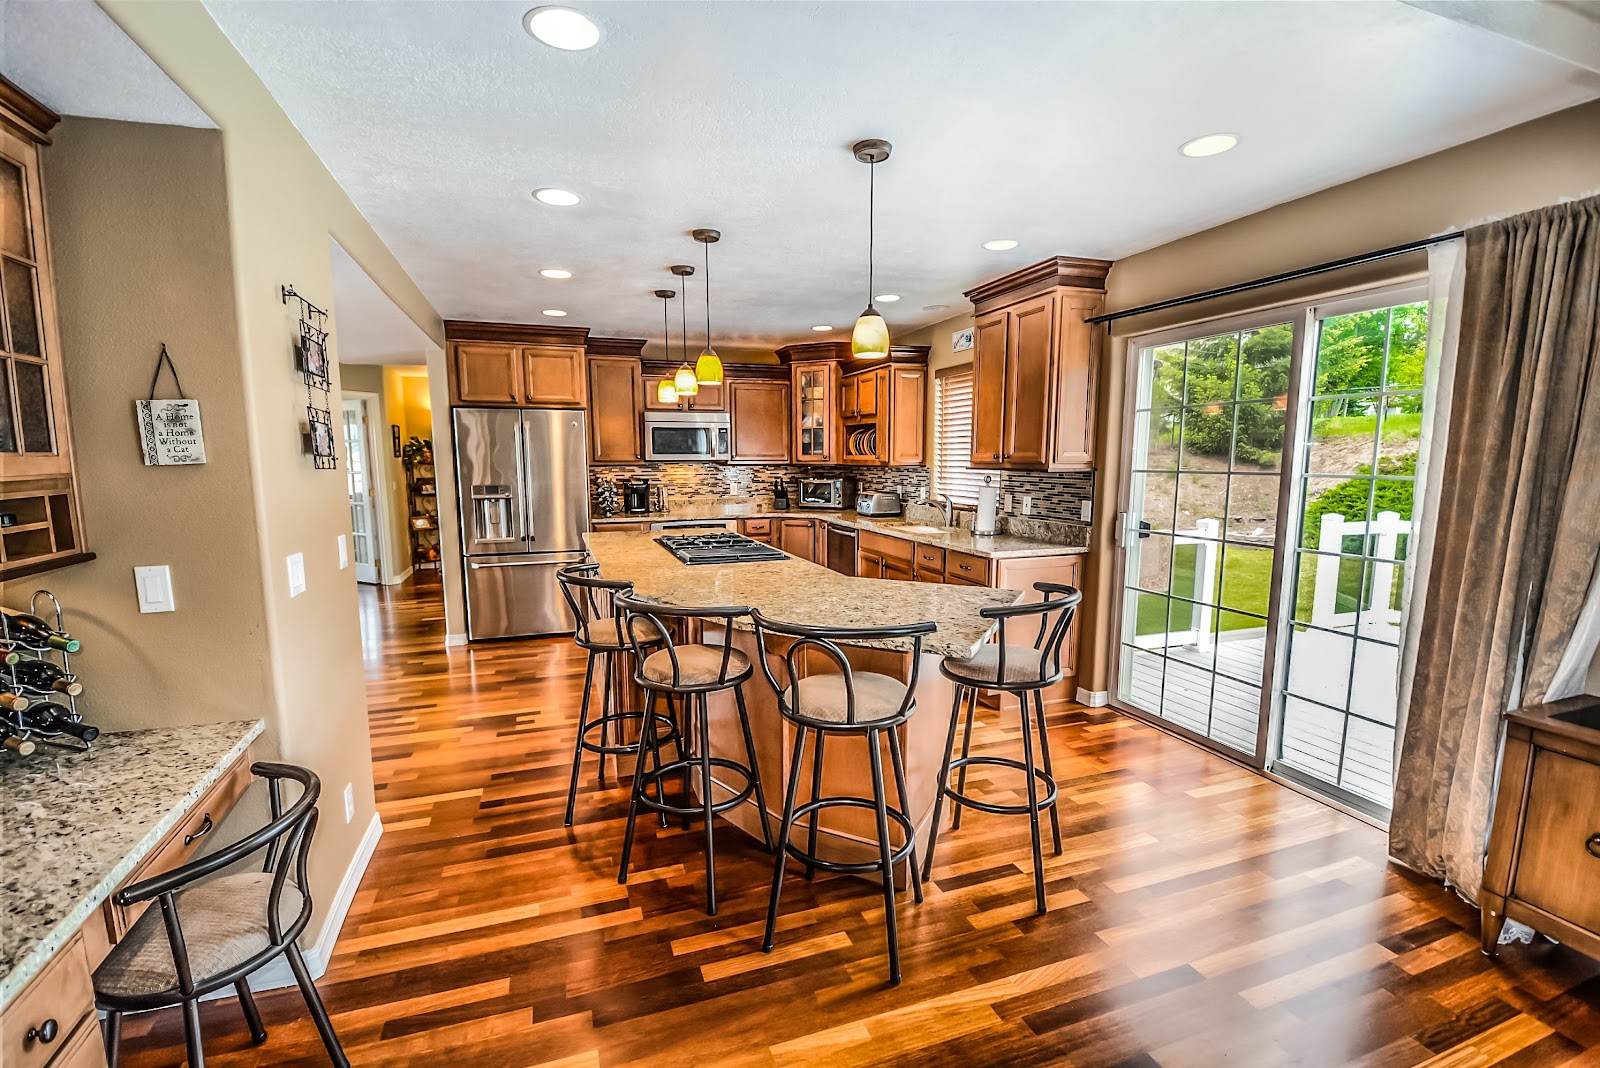 nice kitchen with hardwood floors and granite counter tops